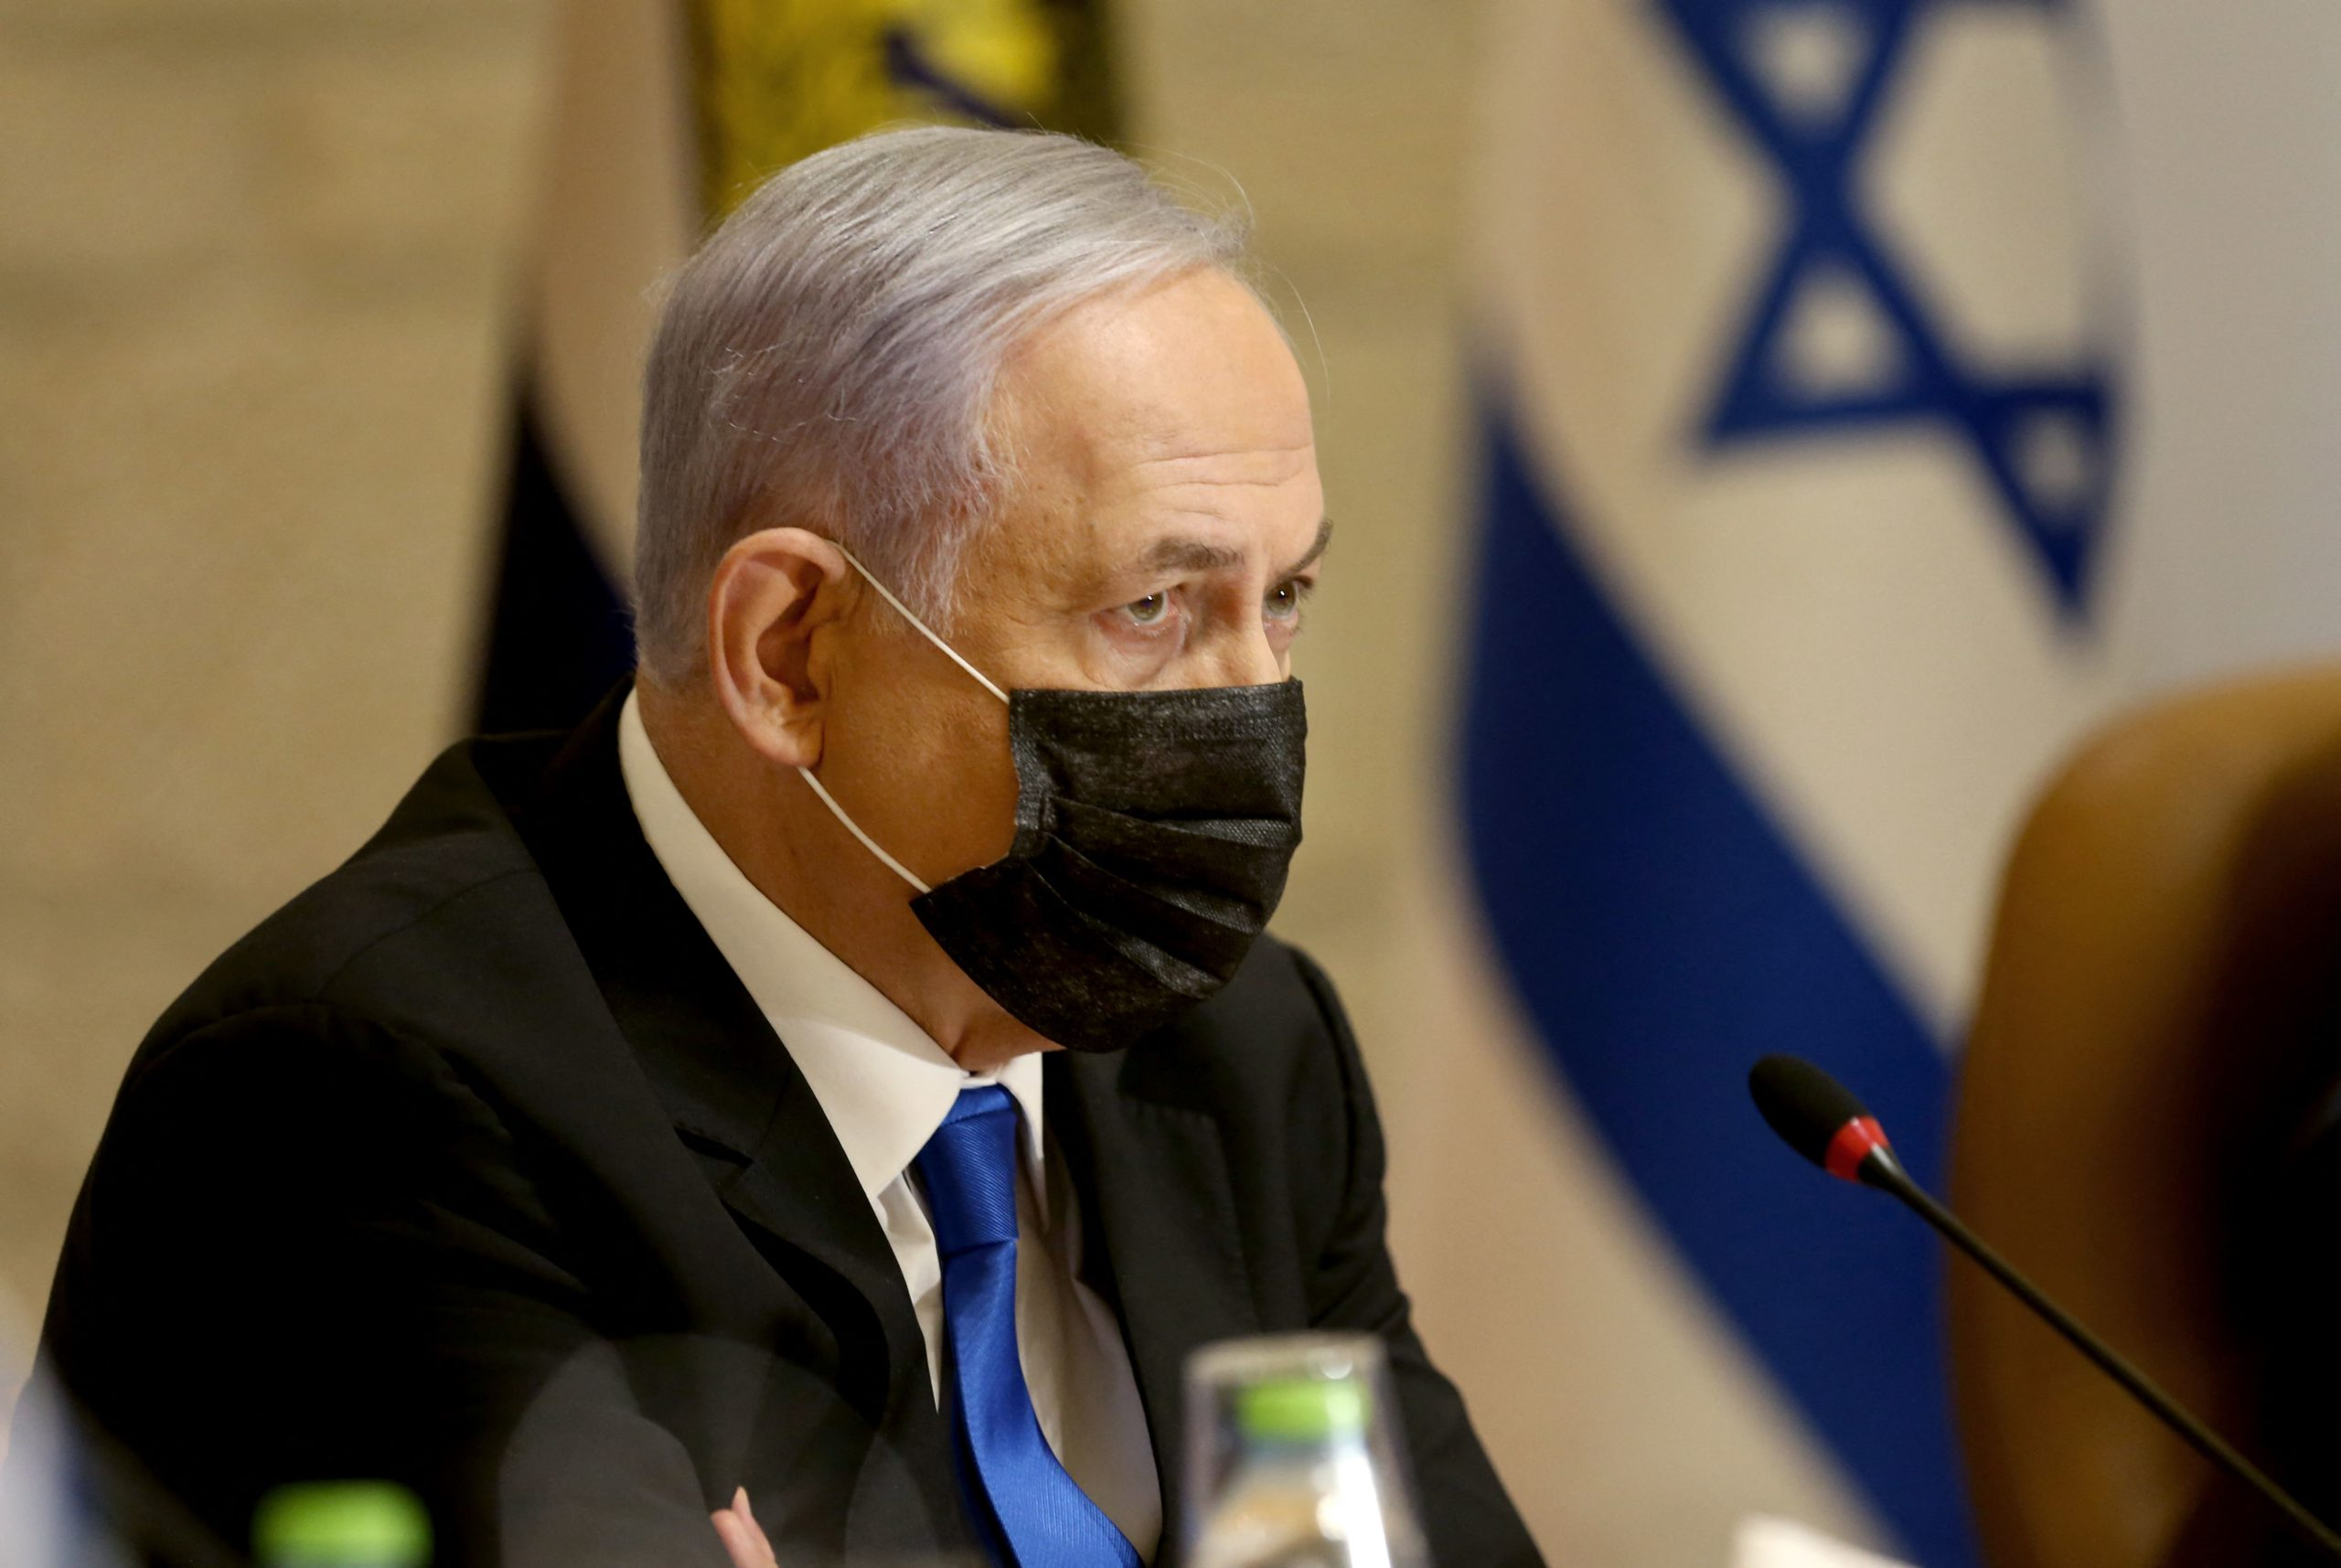 """Israeli Prime Minister Benjamin Netanyahu, wearing a mask for protection against the COVID-19 pandemic, attends a special cabinet meeting on the occasion of """"Jerusalem Day"""" at the city's municipality building on May 9, 2021. (AMIT SHABI/POOL/AFP via Getty Images)"""